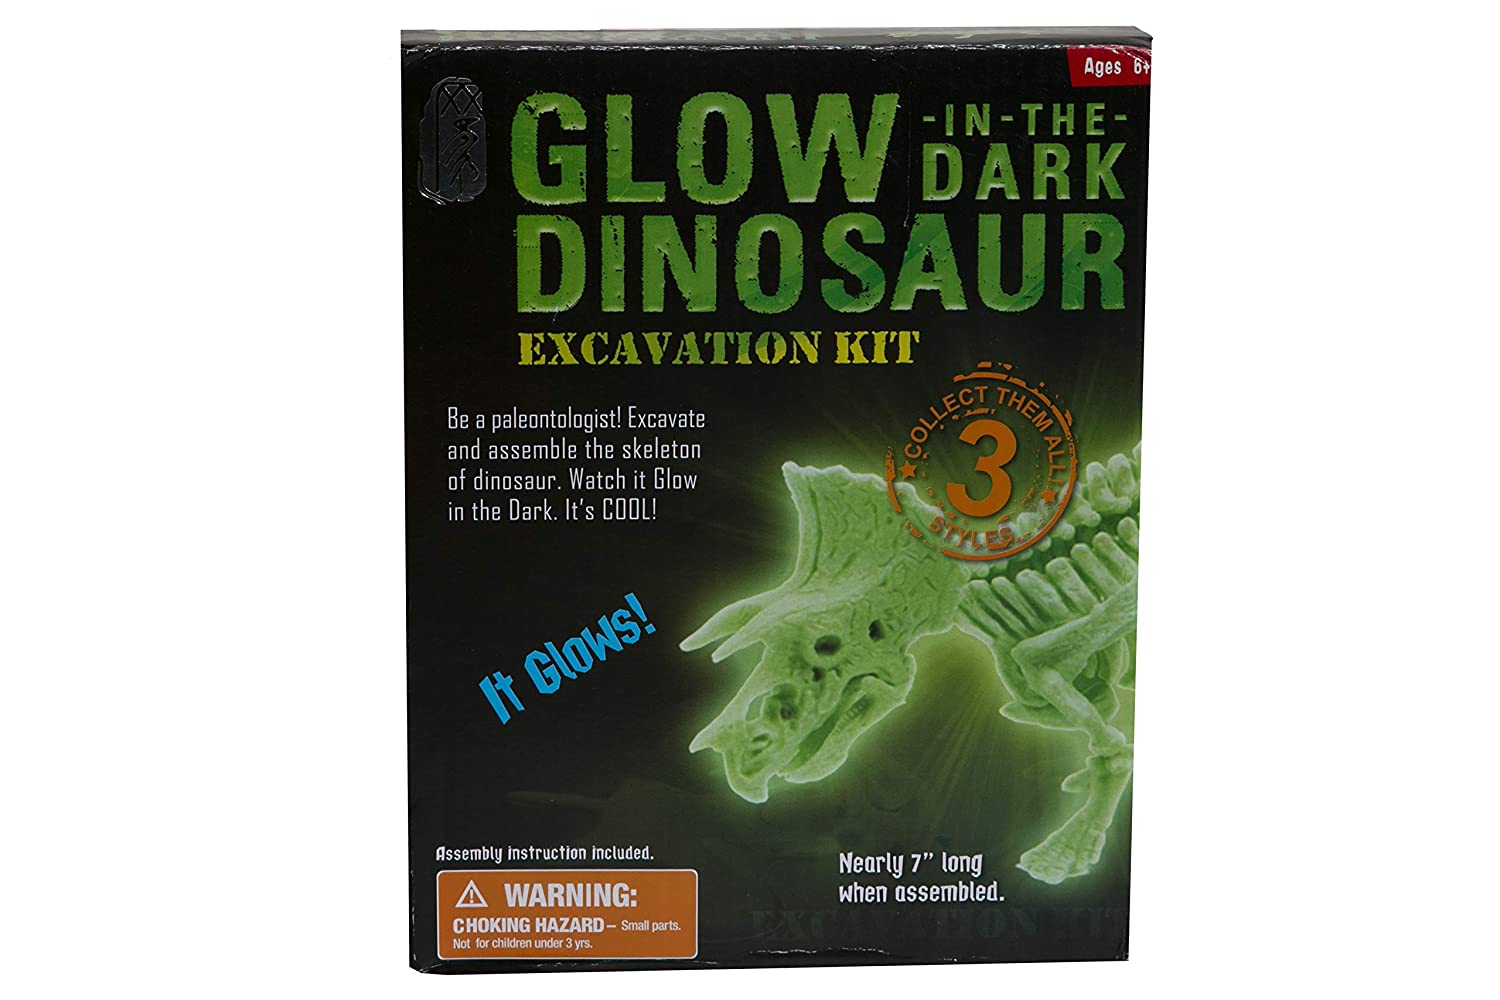 3D Puzzle and Educational Toys for Kids Fun Gift Archaeology Science kit Night Glow Discovery Skeleton Triceratops NewRecruits Jurassic Fossil Dinosaur Excavation kit